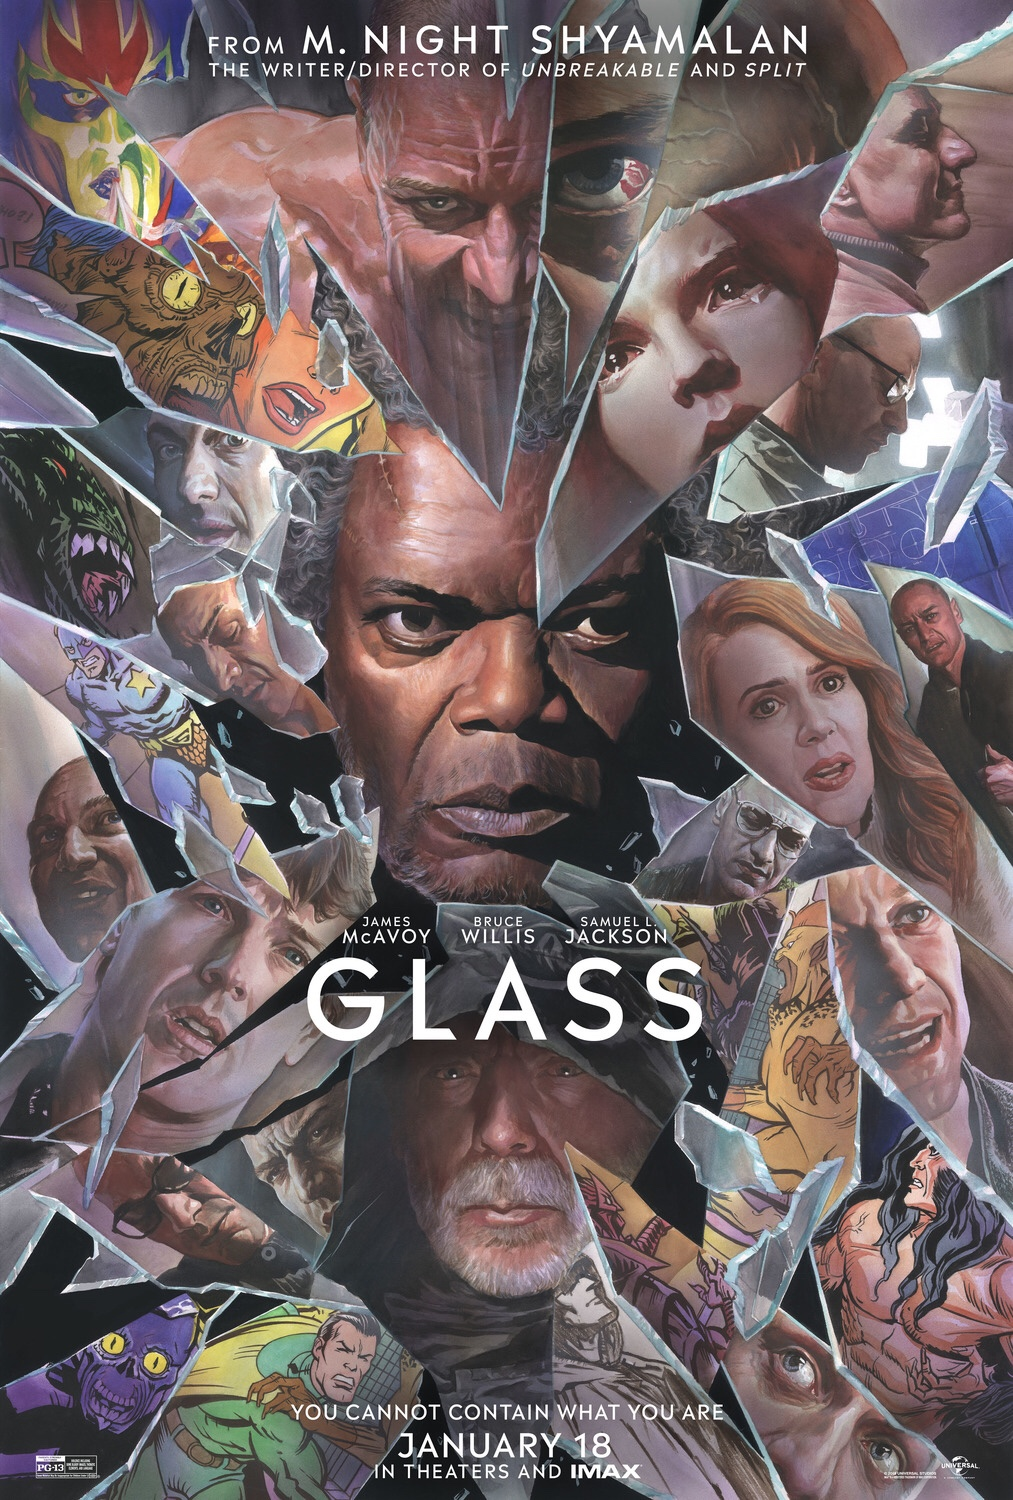 """Glass"""" Is M  Night Shyamalan At His Most Fragile – The Moya View"""